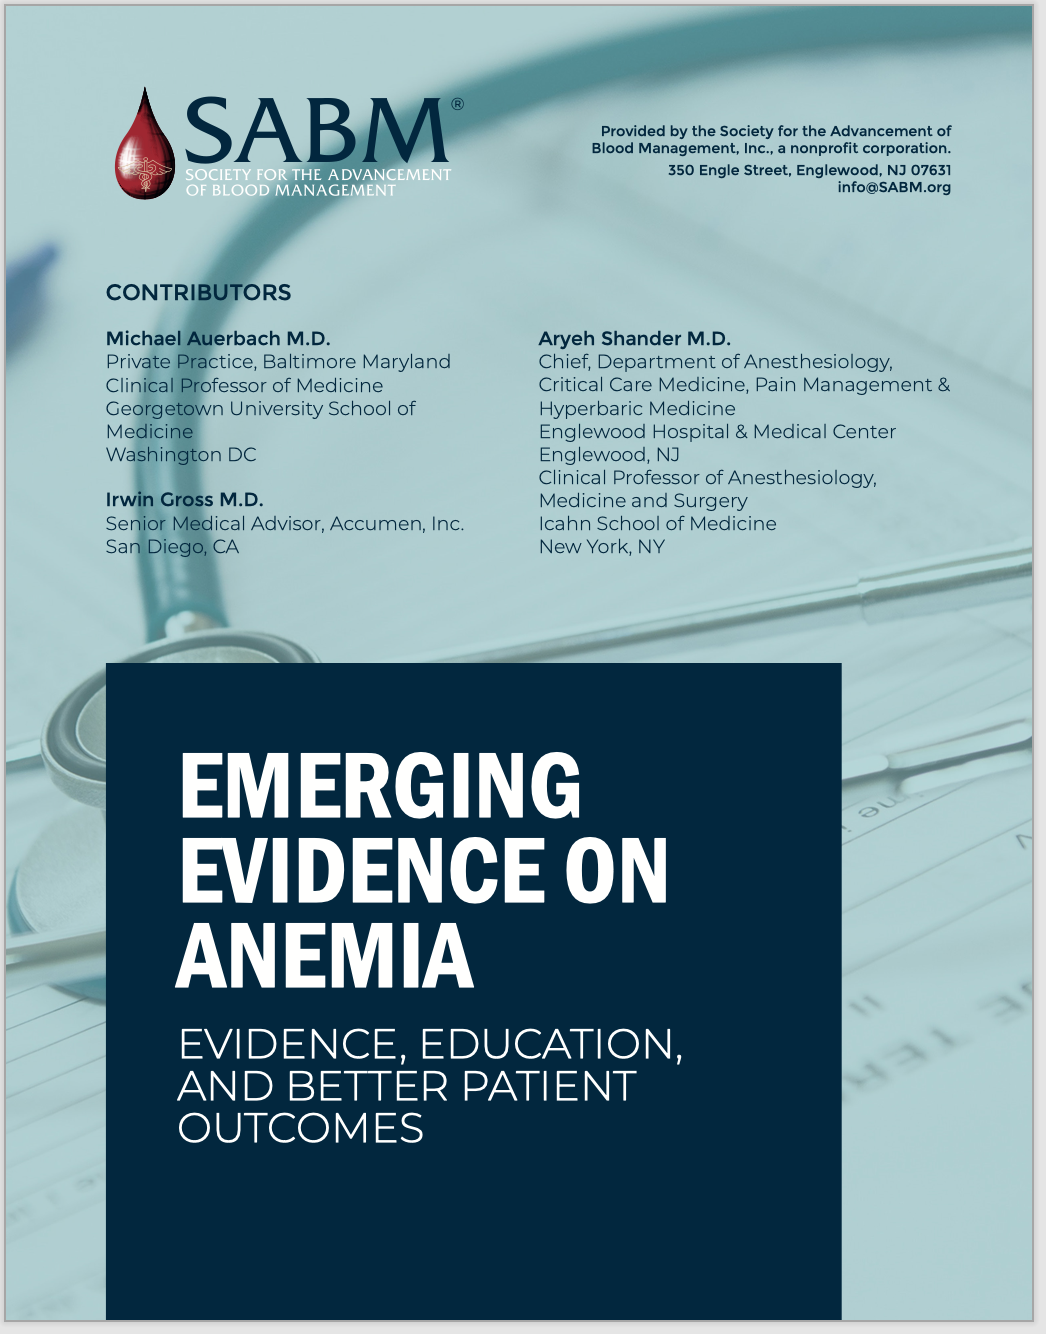 Emerging Evidence on Anemia, Transfusion, Intravenous Iron, and Patient Outcomes: The Case for Expanded Coverage of Intravenous Iron